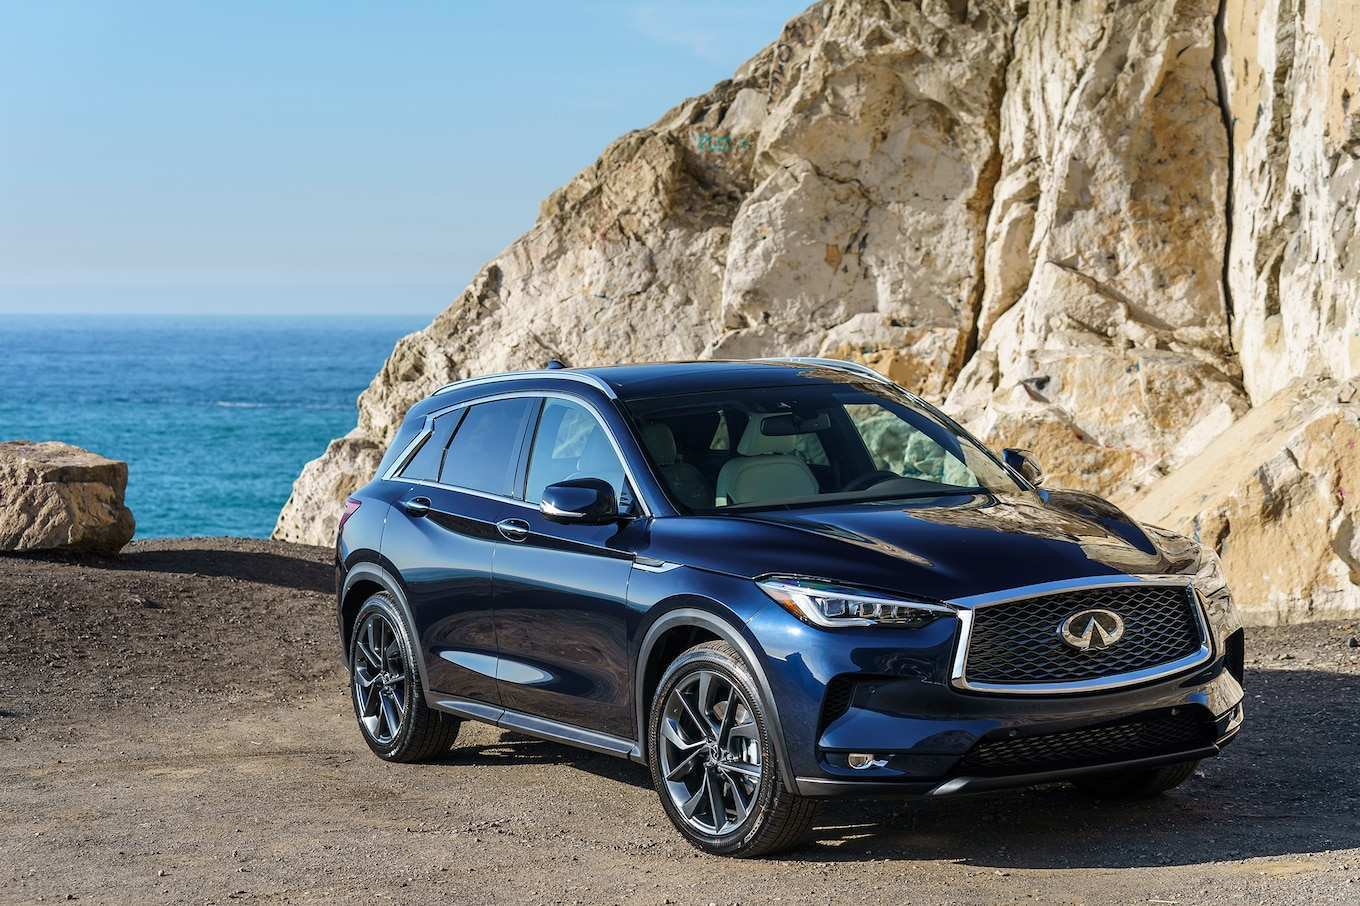 16 Concept of 2019 Infiniti Qx50 Weight Spy Shoot with 2019 Infiniti Qx50 Weight